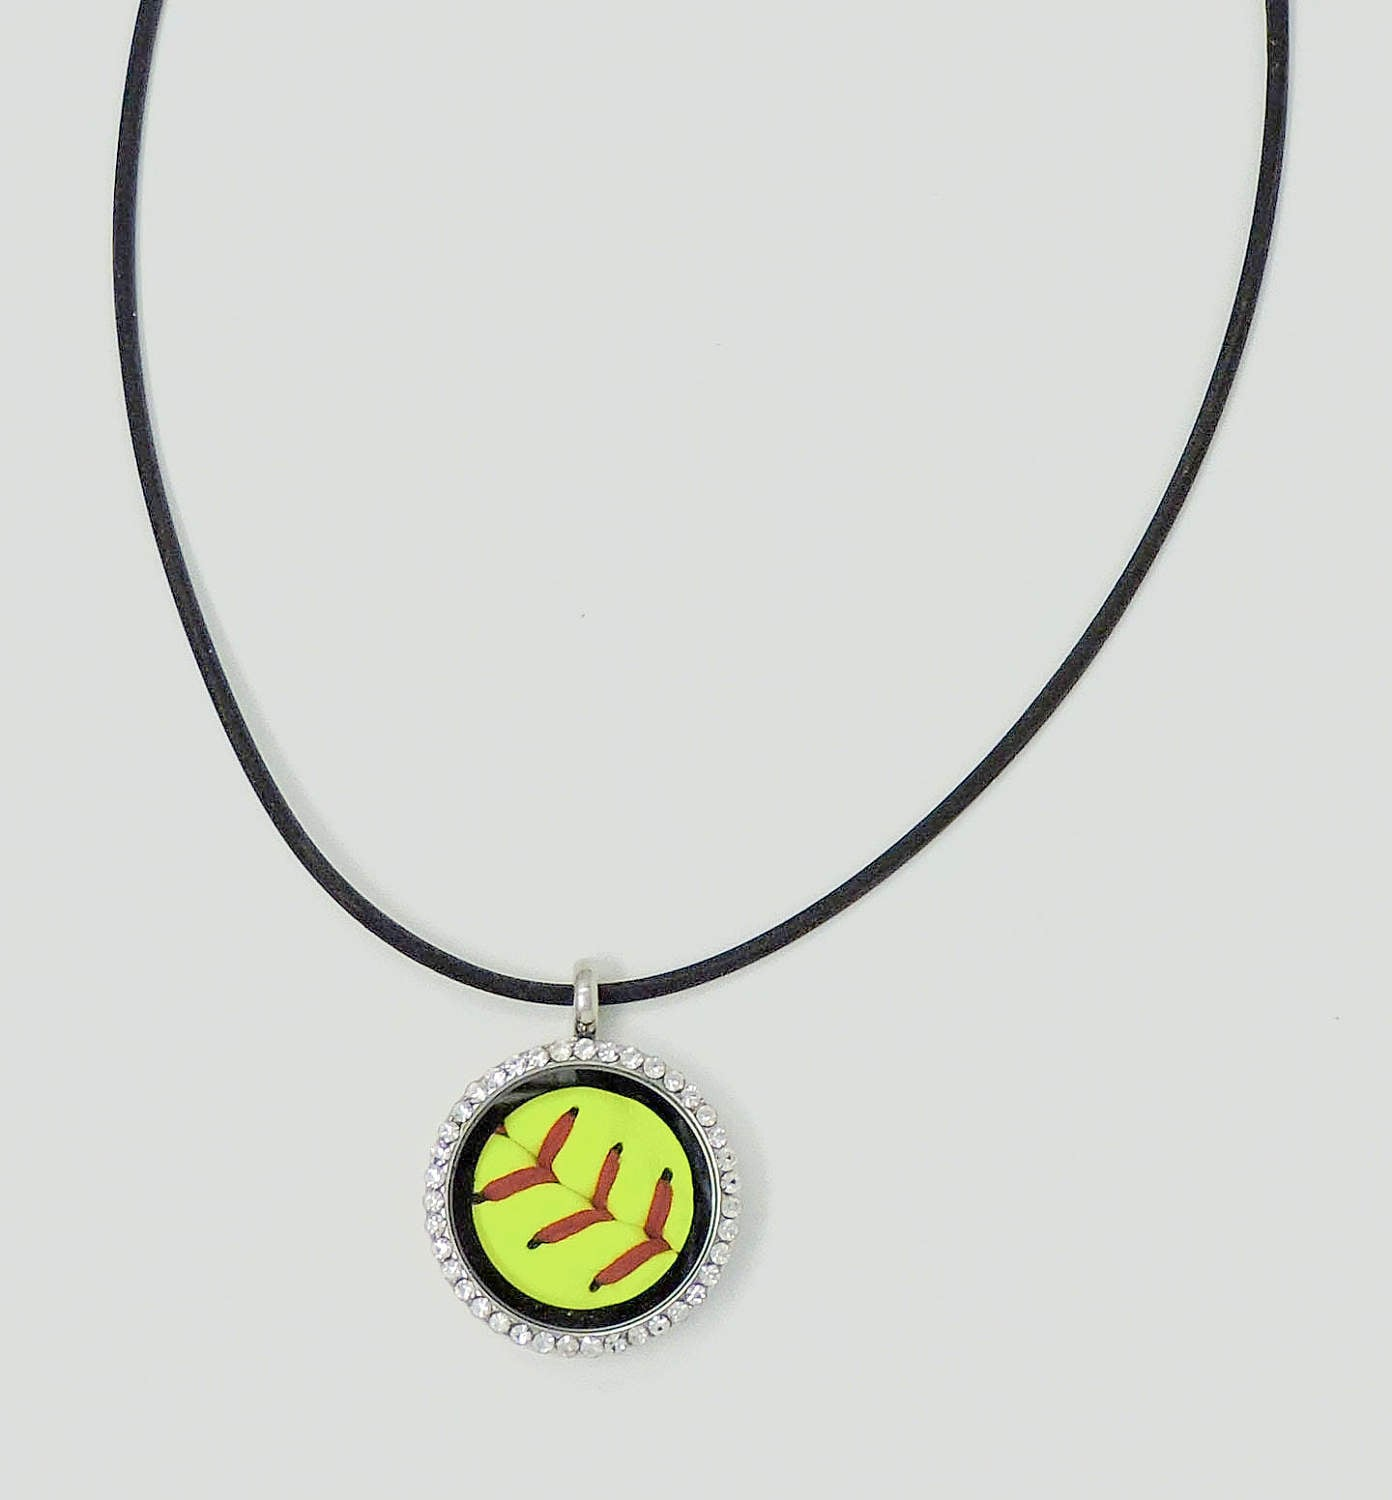 chicas personalized gift w gifts go jewelry necklace up bc of for softball direction pendant dreams in your get this close sporty from numbers confidently with the charm